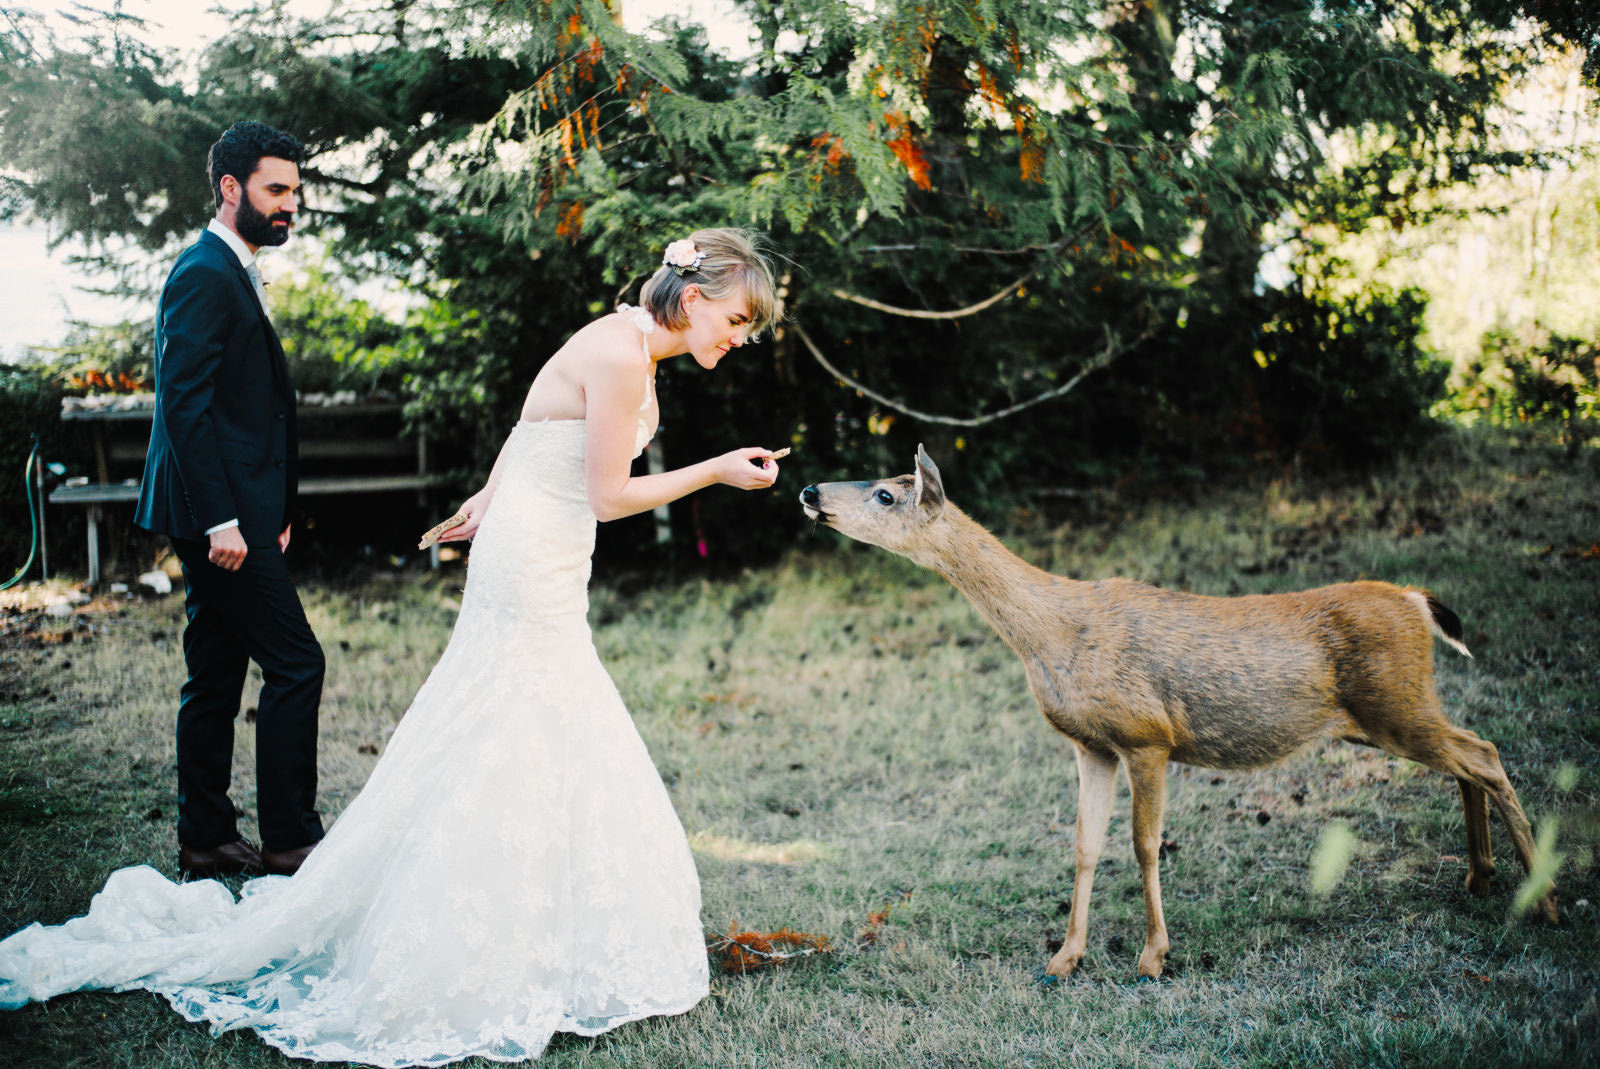 248-bride-feeding-deer-at-wedding-on-herron-island-washington.jpg